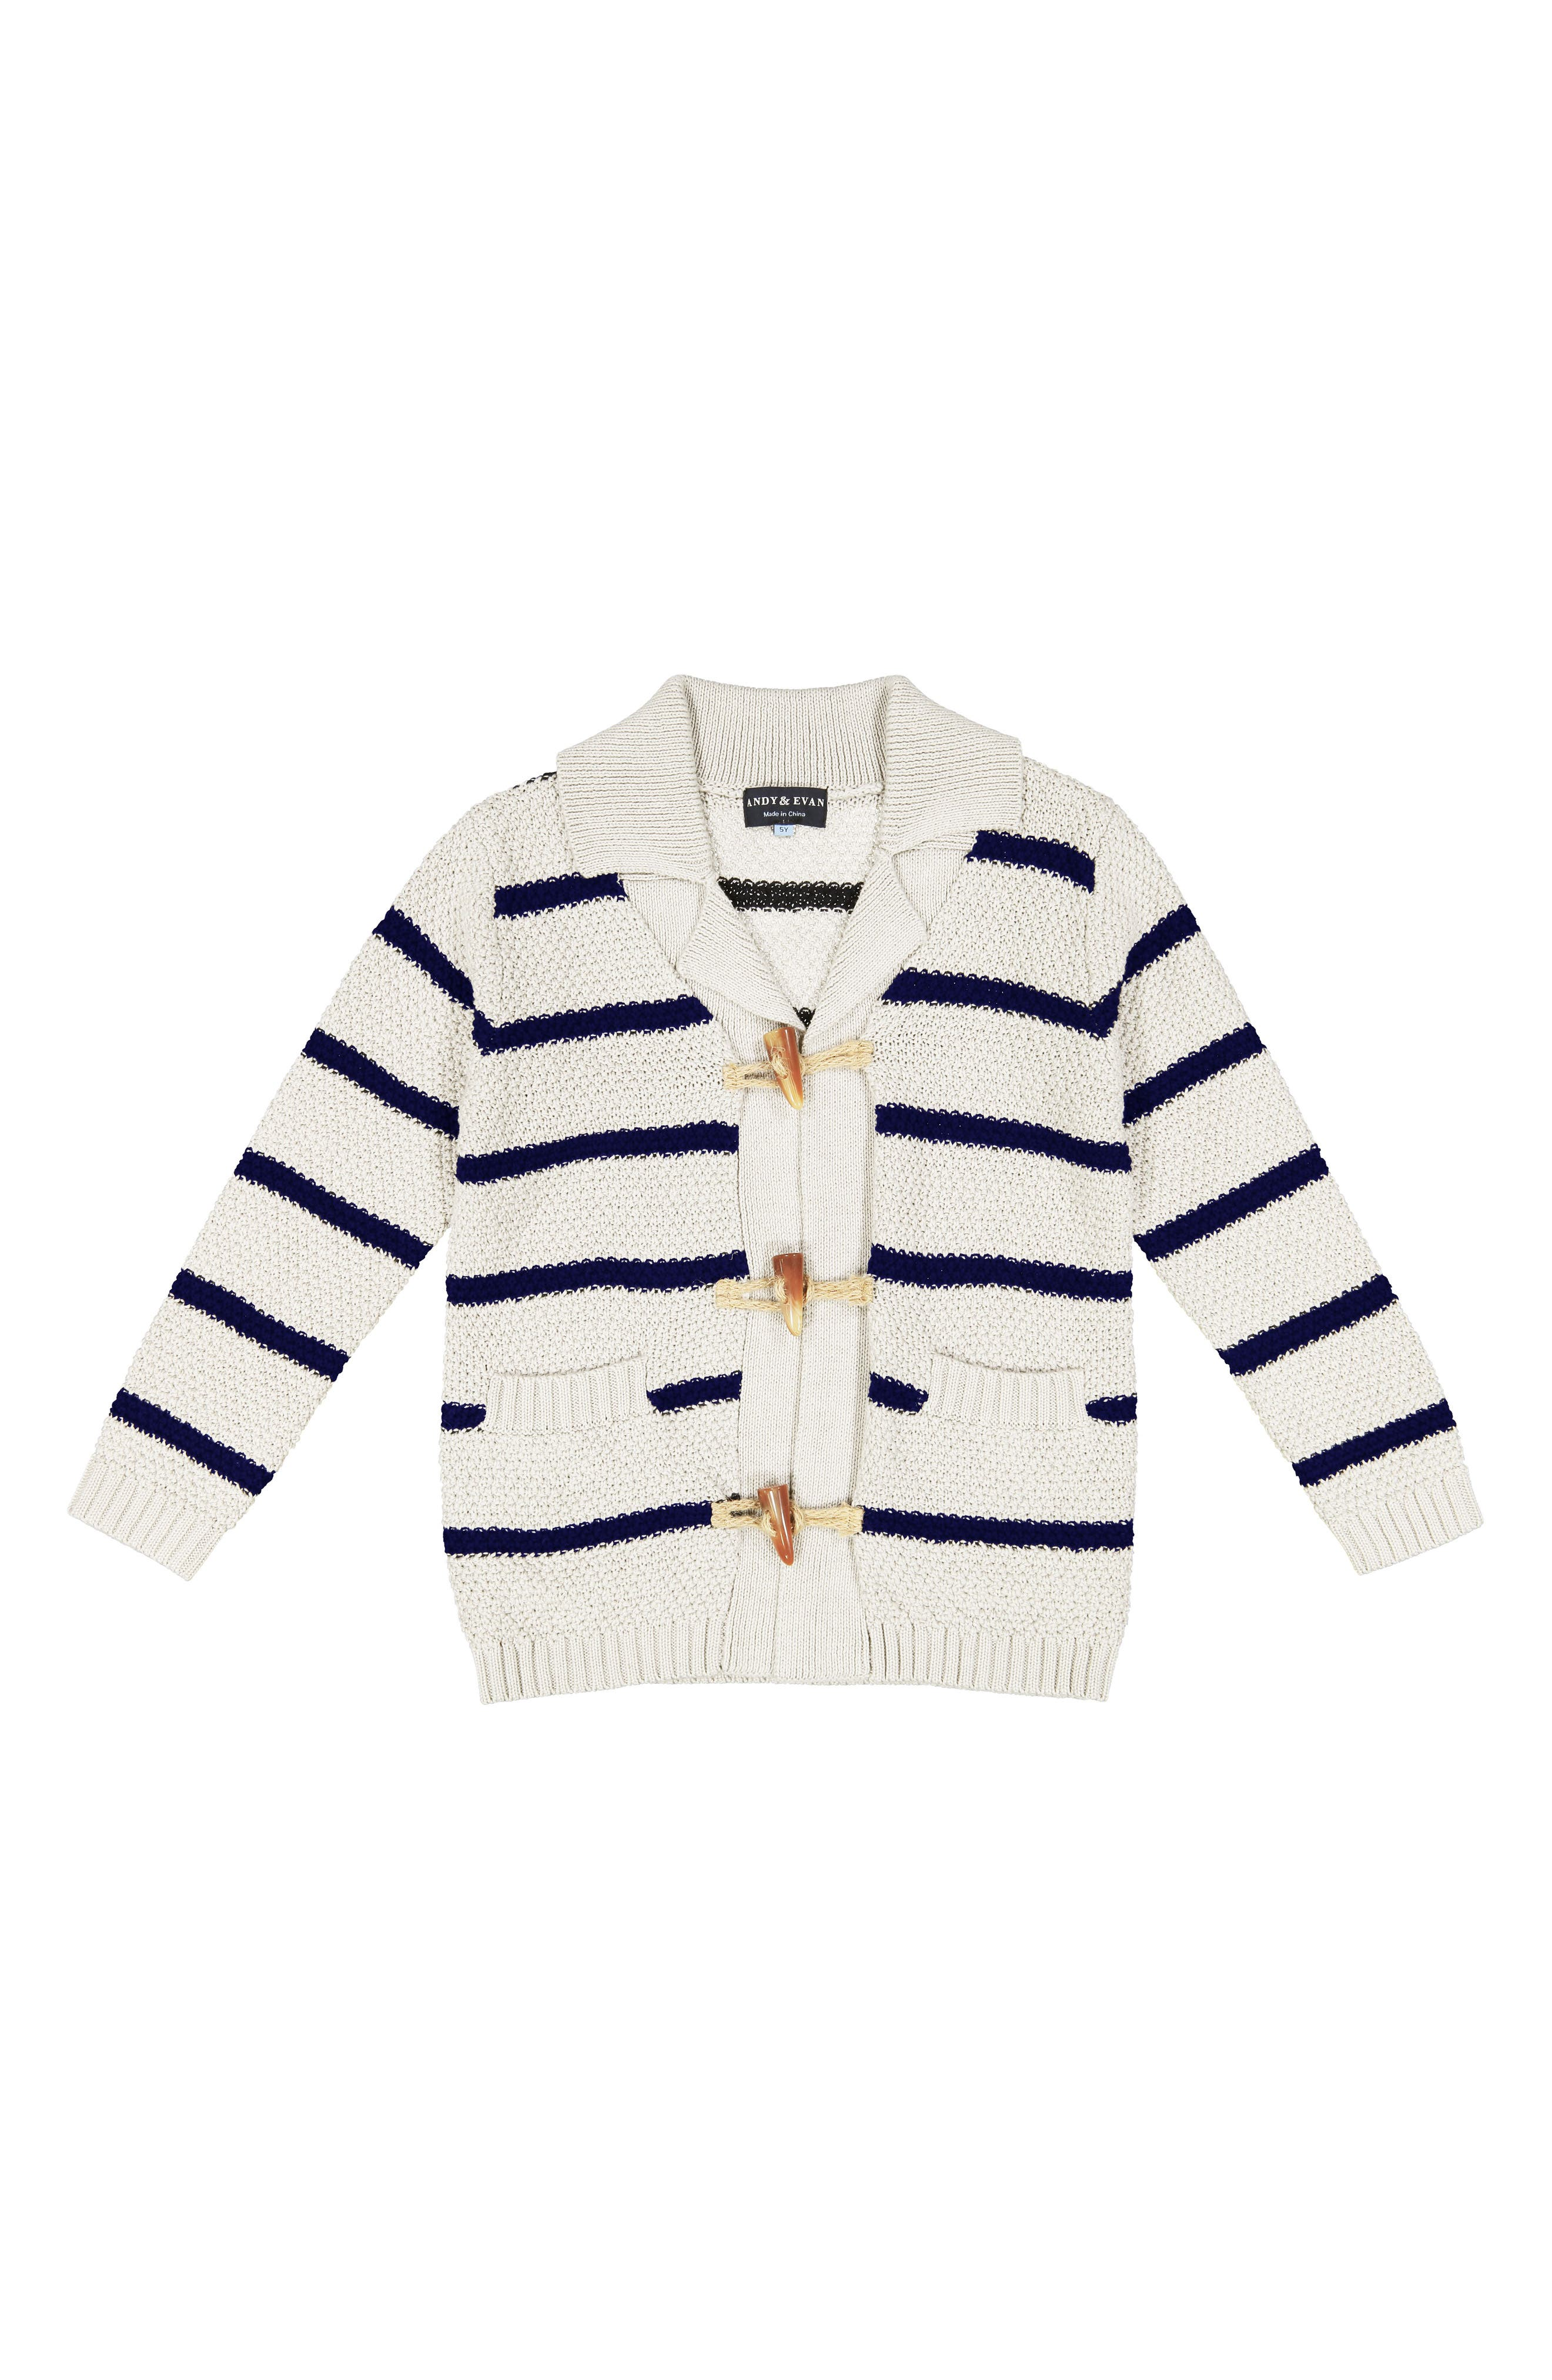 Toggle Cardigan,                             Main thumbnail 1, color,                             White